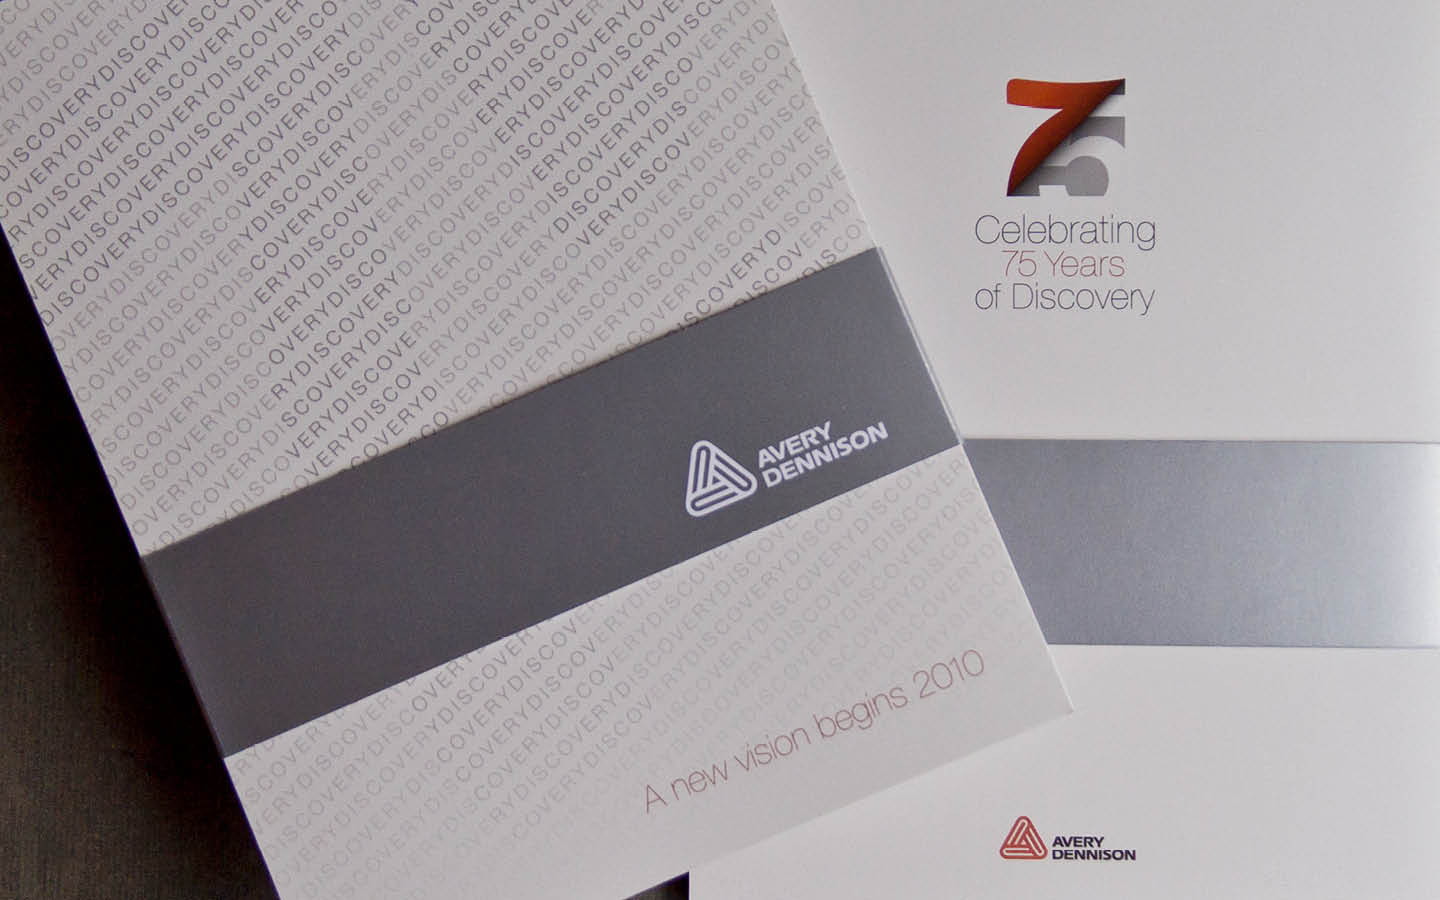 Avery Dennison 75th anniversary printed timeline cover